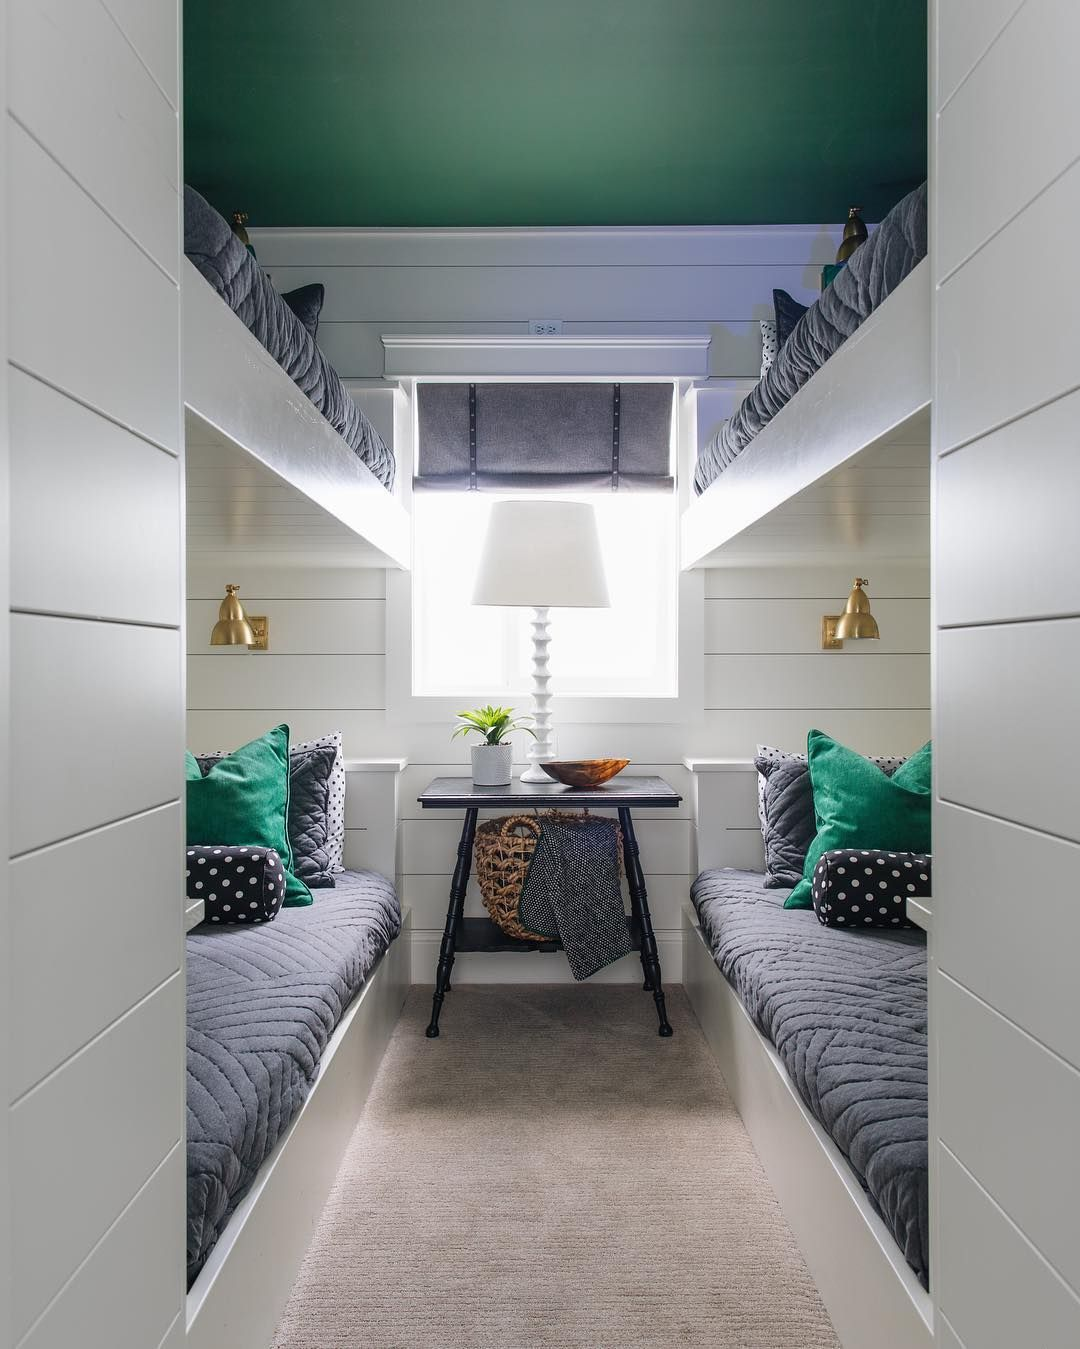 Timber Trails Homes On Instagram These Kids Have The